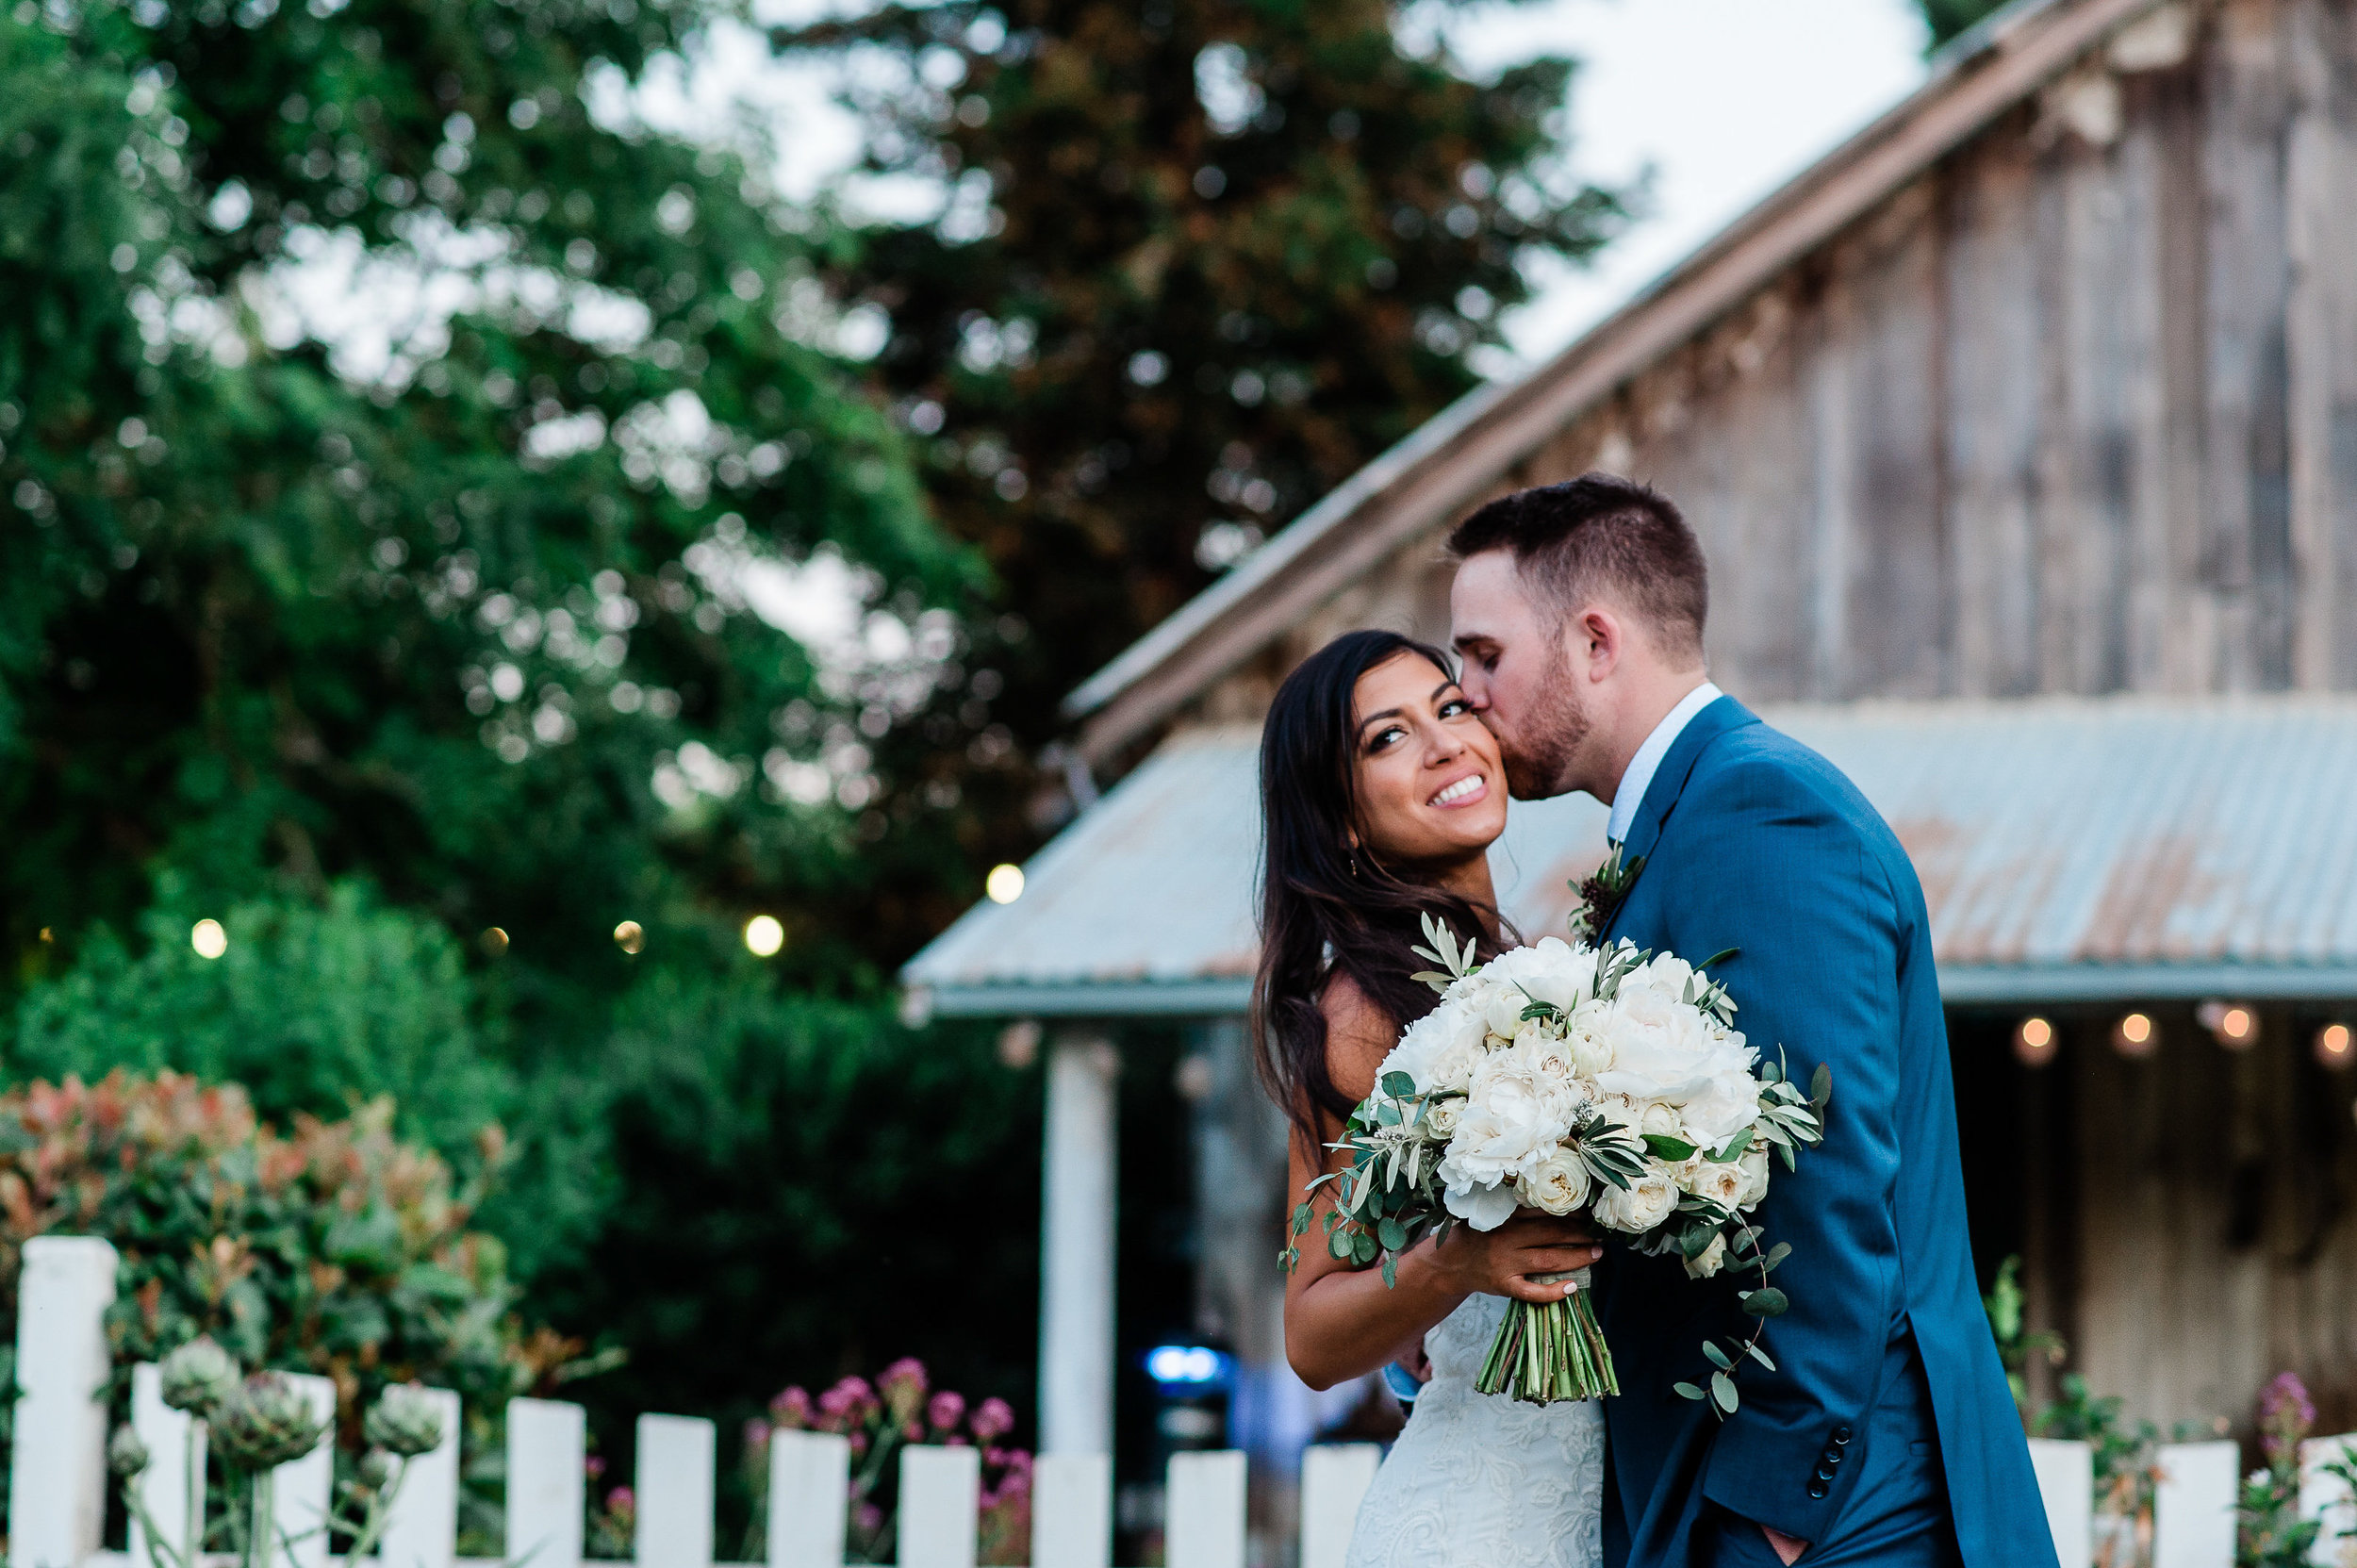 Park Winters Summer Wedding | Bride and Groom Photo | Country Wedding | Vintage Wedding | White Bouquet | Bridal Bouquet